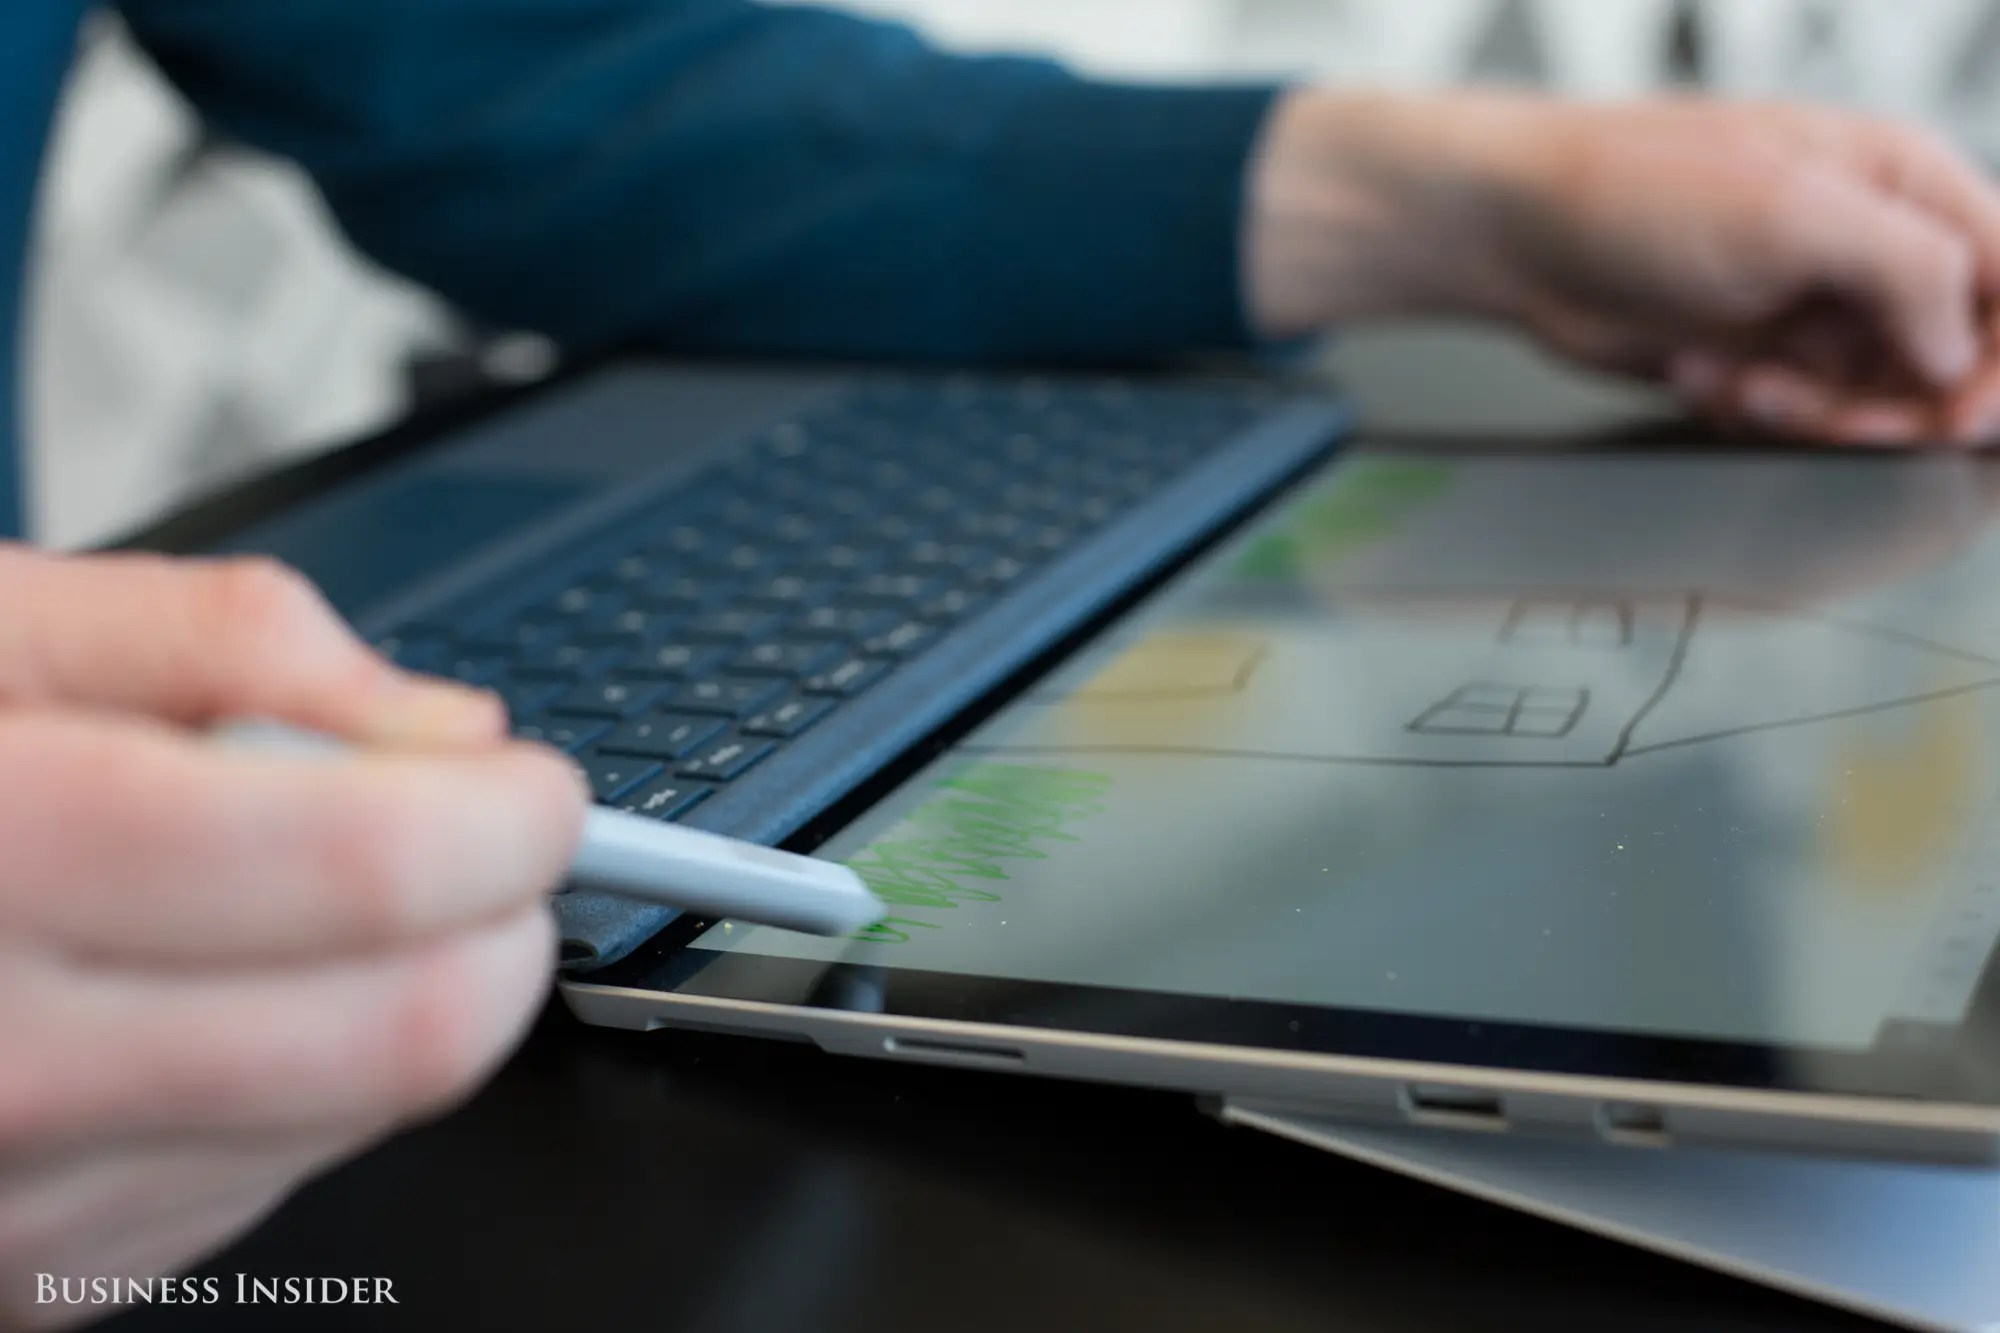 That tablet design, plus the kickstand, actually makes the Surface Pro a great little sketchpad and notepad. You can use it with or without the keyboard attached, giving you a little more flexibility.